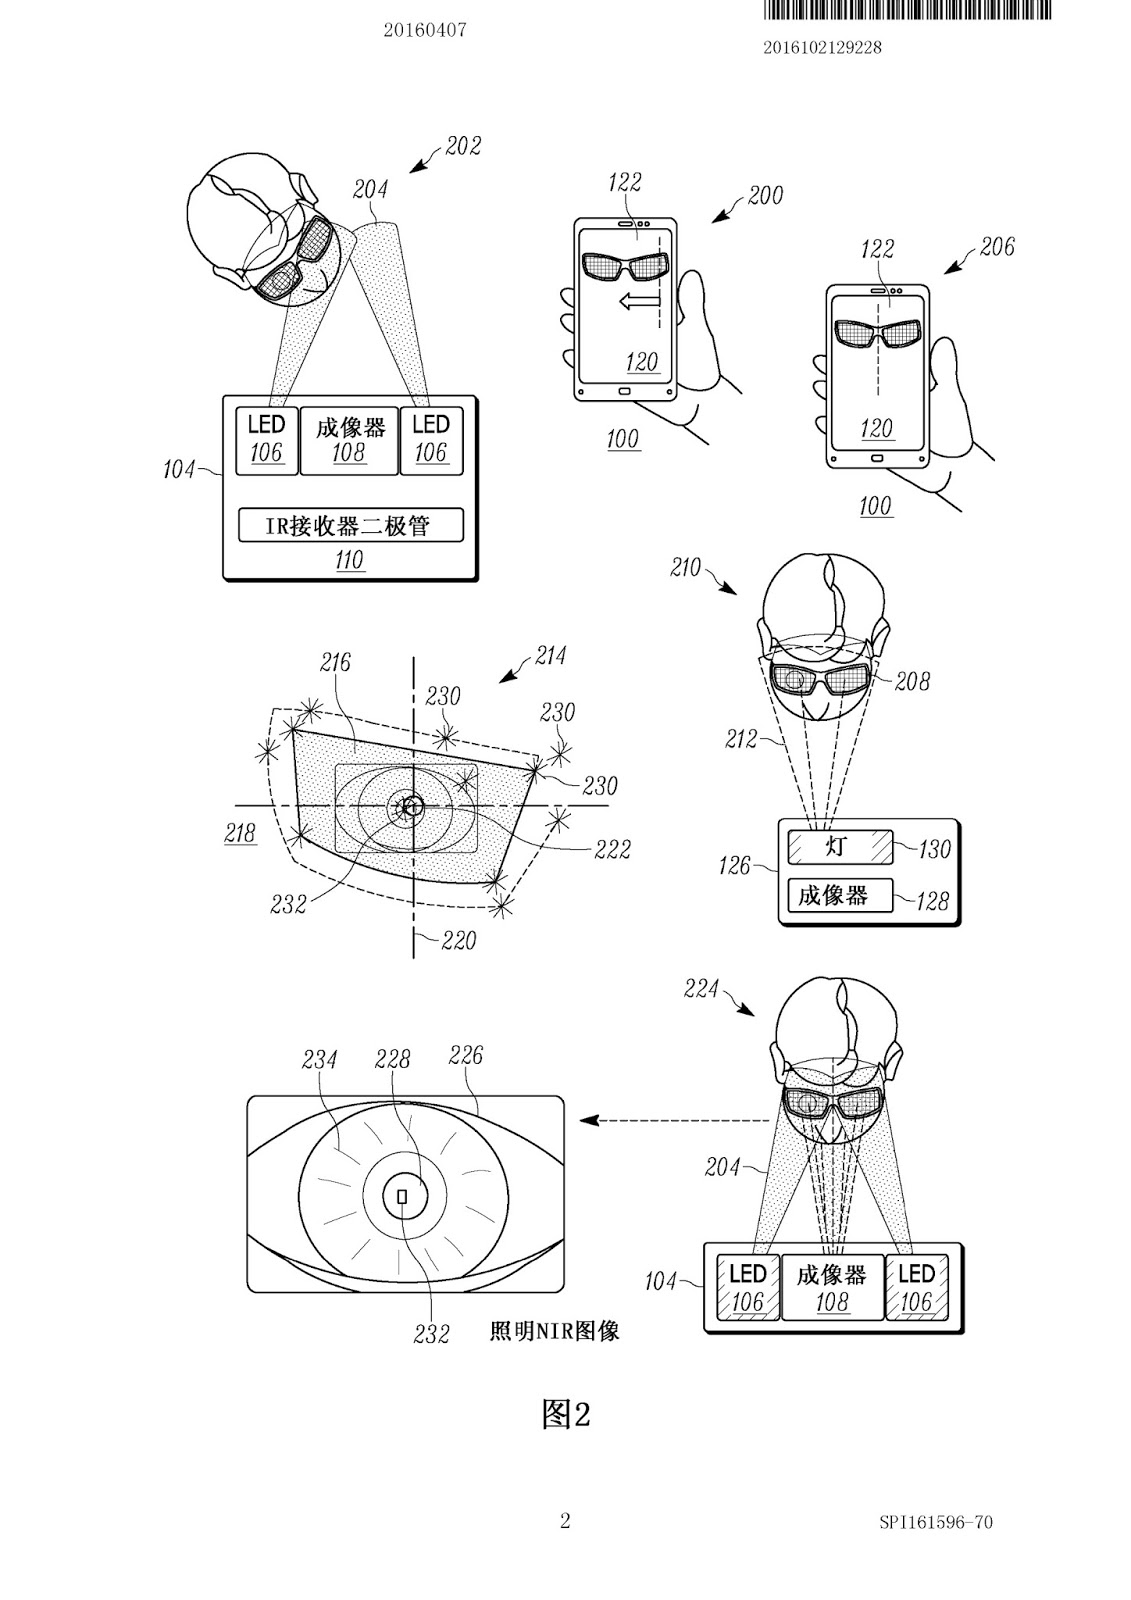 Motorola files patent for Iris Scanner, Could We See It On